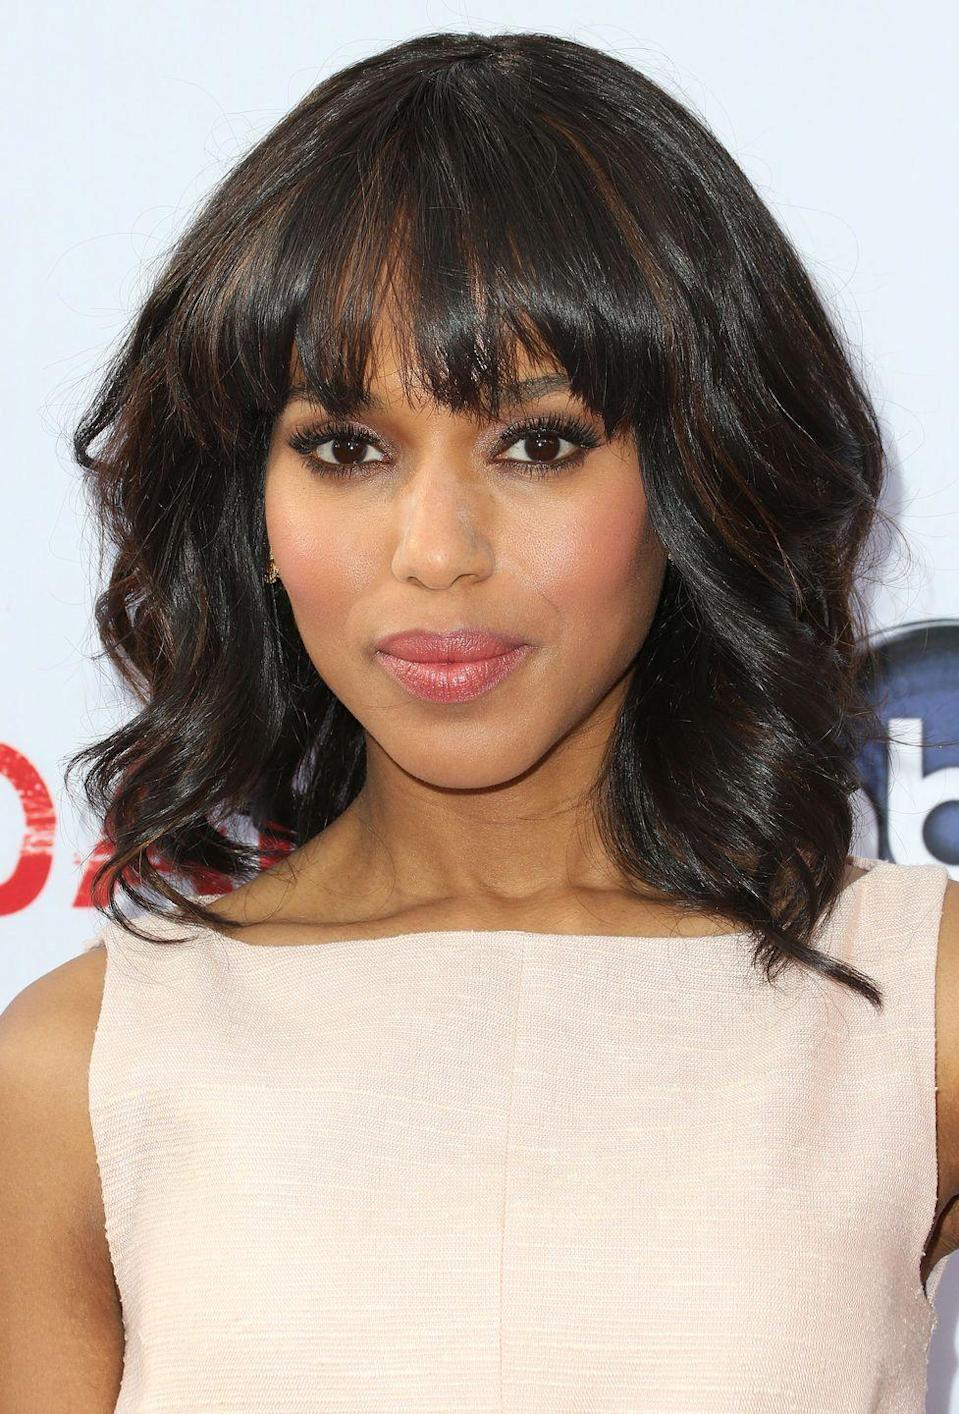 """<p>Thick, jagged bangs that hit just around the eyebrows add a fun effect to a <a href=""""https://www.goodhousekeeping.com/beauty/hair/tips/g1181/celebrity-medium-length-hairstyles/"""" rel=""""nofollow noopener"""" target=""""_blank"""" data-ylk=""""slk:shoulder-length cut"""" class=""""link rapid-noclick-resp"""">shoulder-length cut</a> like Kerry Washington's. </p>"""